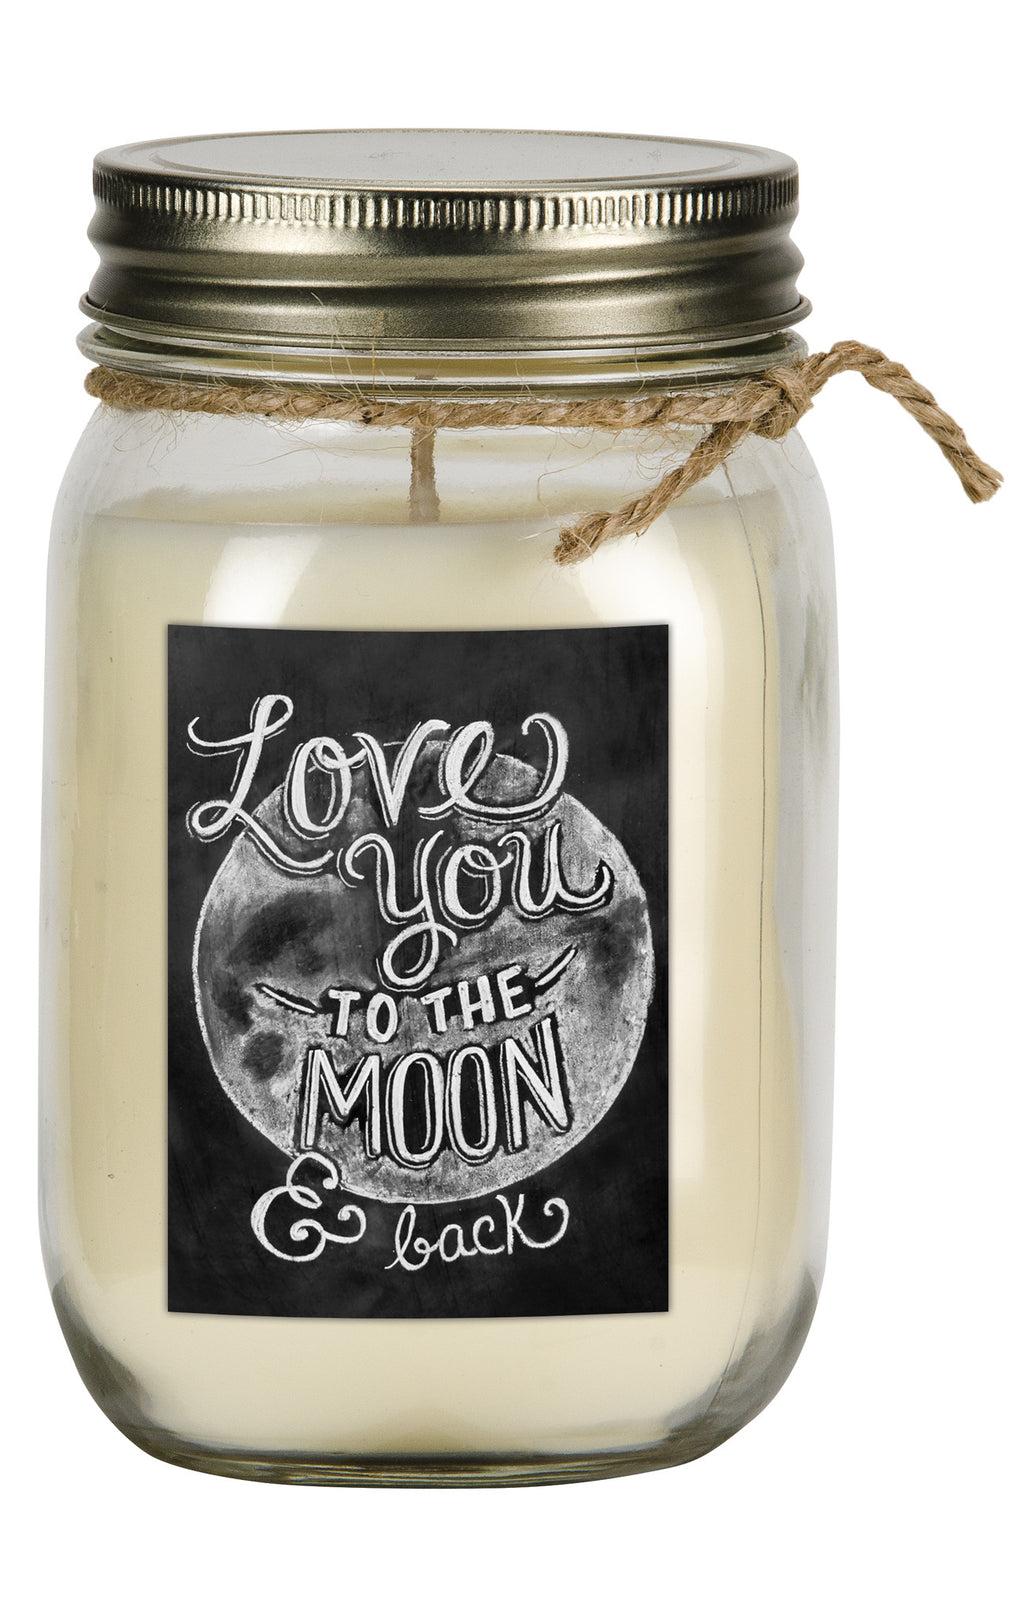 To The Moon - Candle